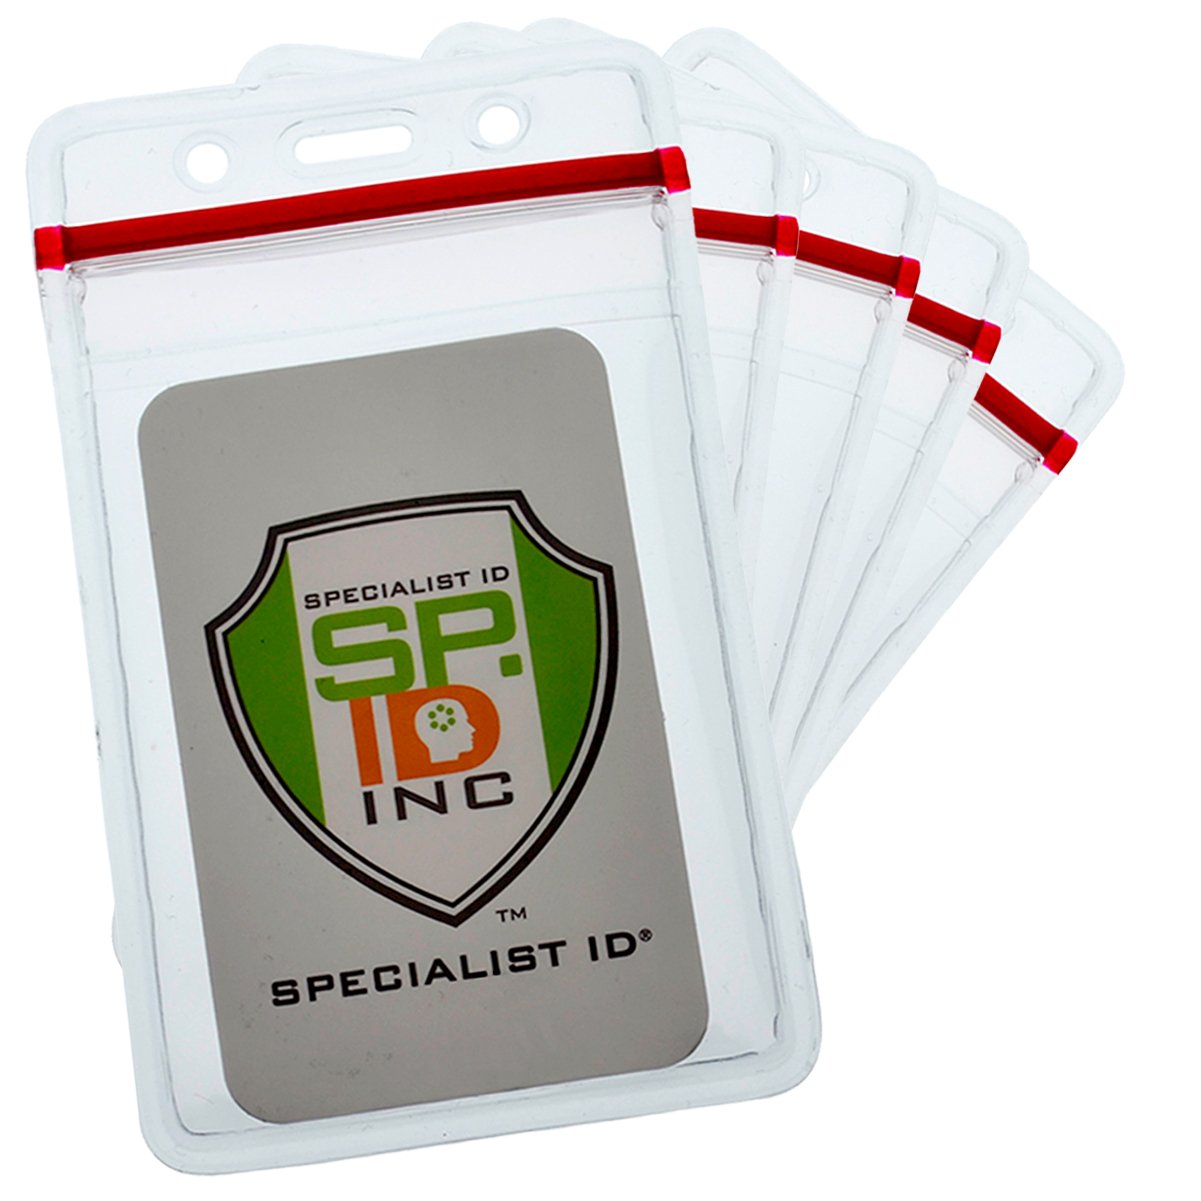 Bulk 100 Pack - Heavy Duty Vertical Resealable Vinyl Badge Holders for Employee Or Student ID - Clear Water Resistant Plastic with Red Ziplock Seal Holds Multiple Cards by Specialist ID